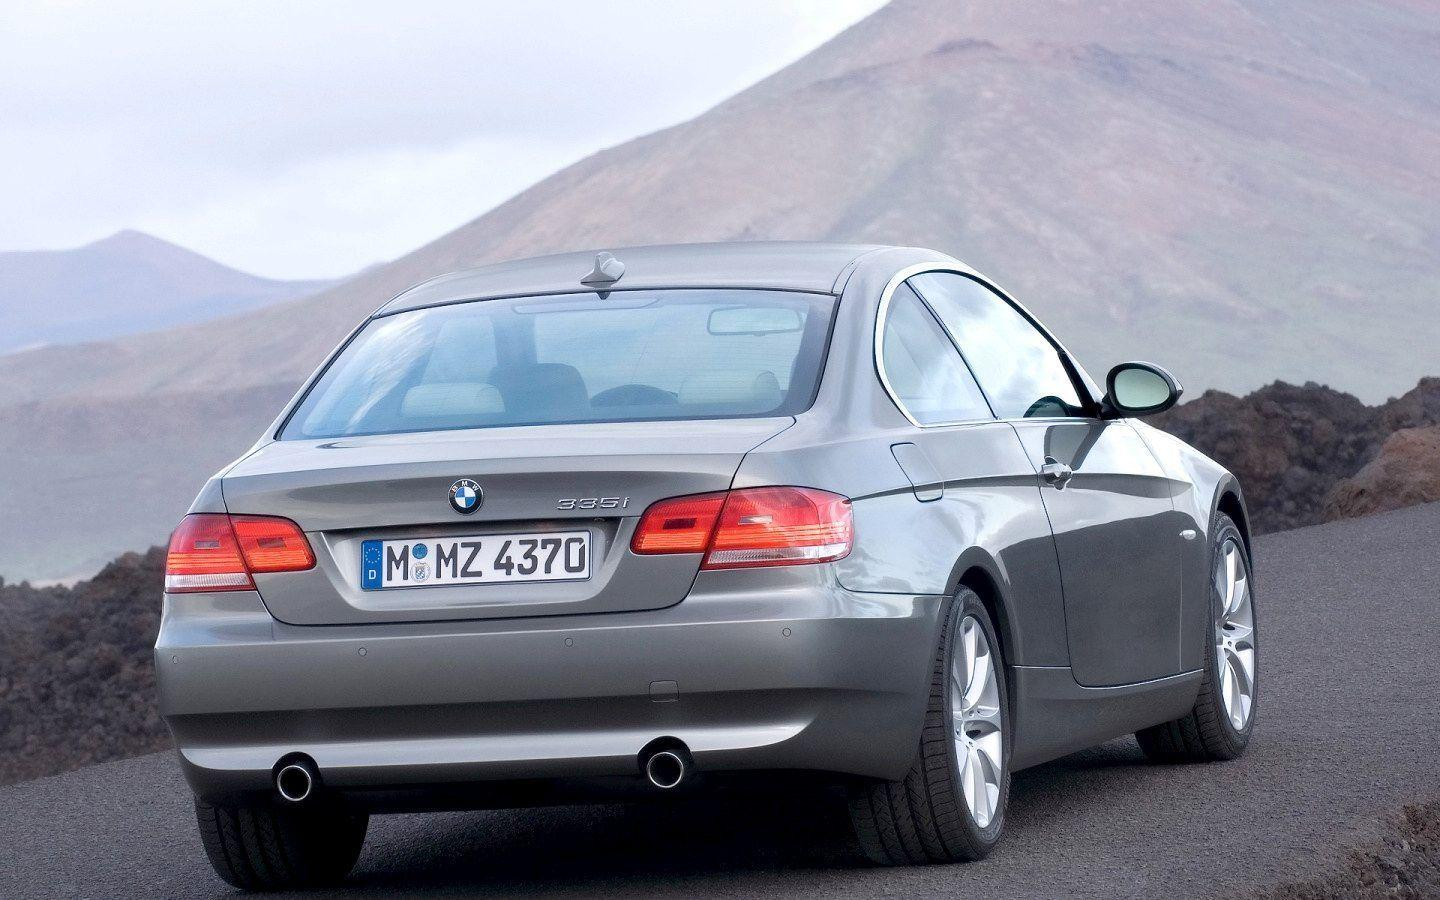 2007 BMW 335i Coupe Wallpaper 02 - 1440x900